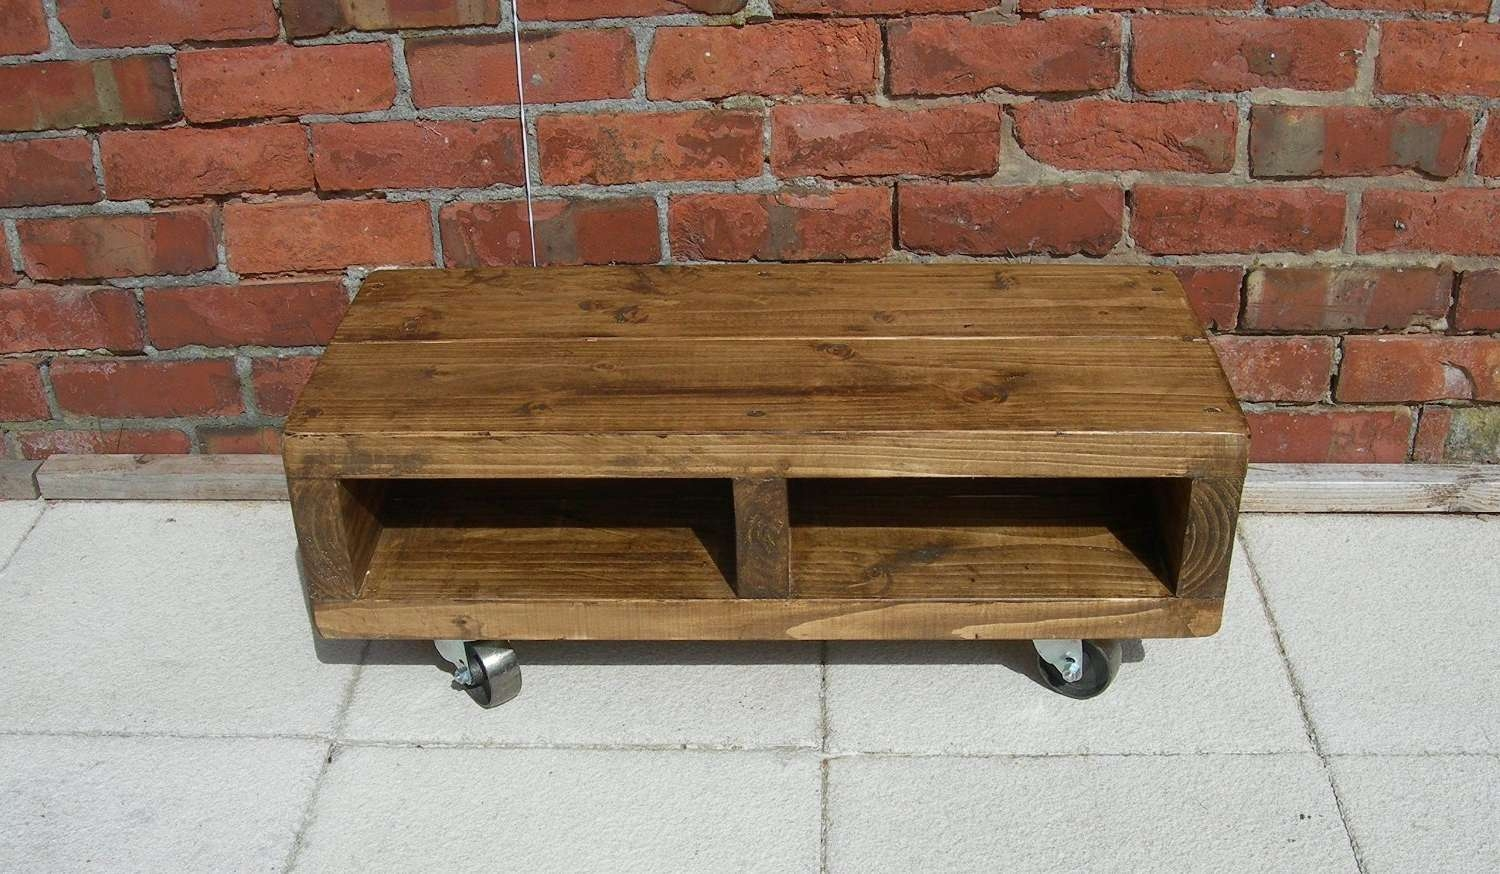 Solid Wood Low Tv Unit With Cast Iron Wheels, 90 Cm Contemporary Regarding Cast Iron Tv Stands (View 8 of 15)